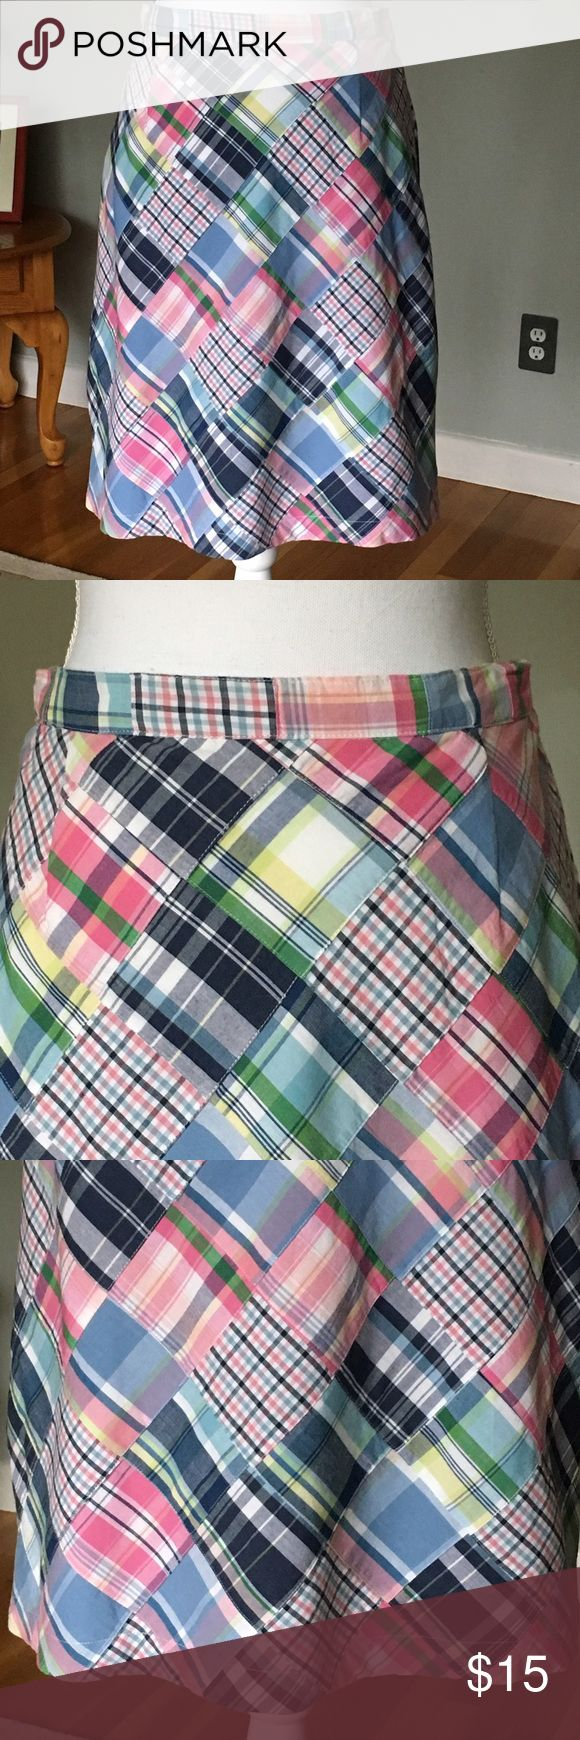 Preppy skirt plaid patchwork size 6 Willi Smith This is a pretty patchwork skirt in size 6.  100% Cotton by Willi Smith.  Fully lined with lightweight cotton fabric. It measures about 24 inches across the waistband and 21 inches from top of the waistband to bottom hem.  Gently used condition! Willi Smith Skirts Midi